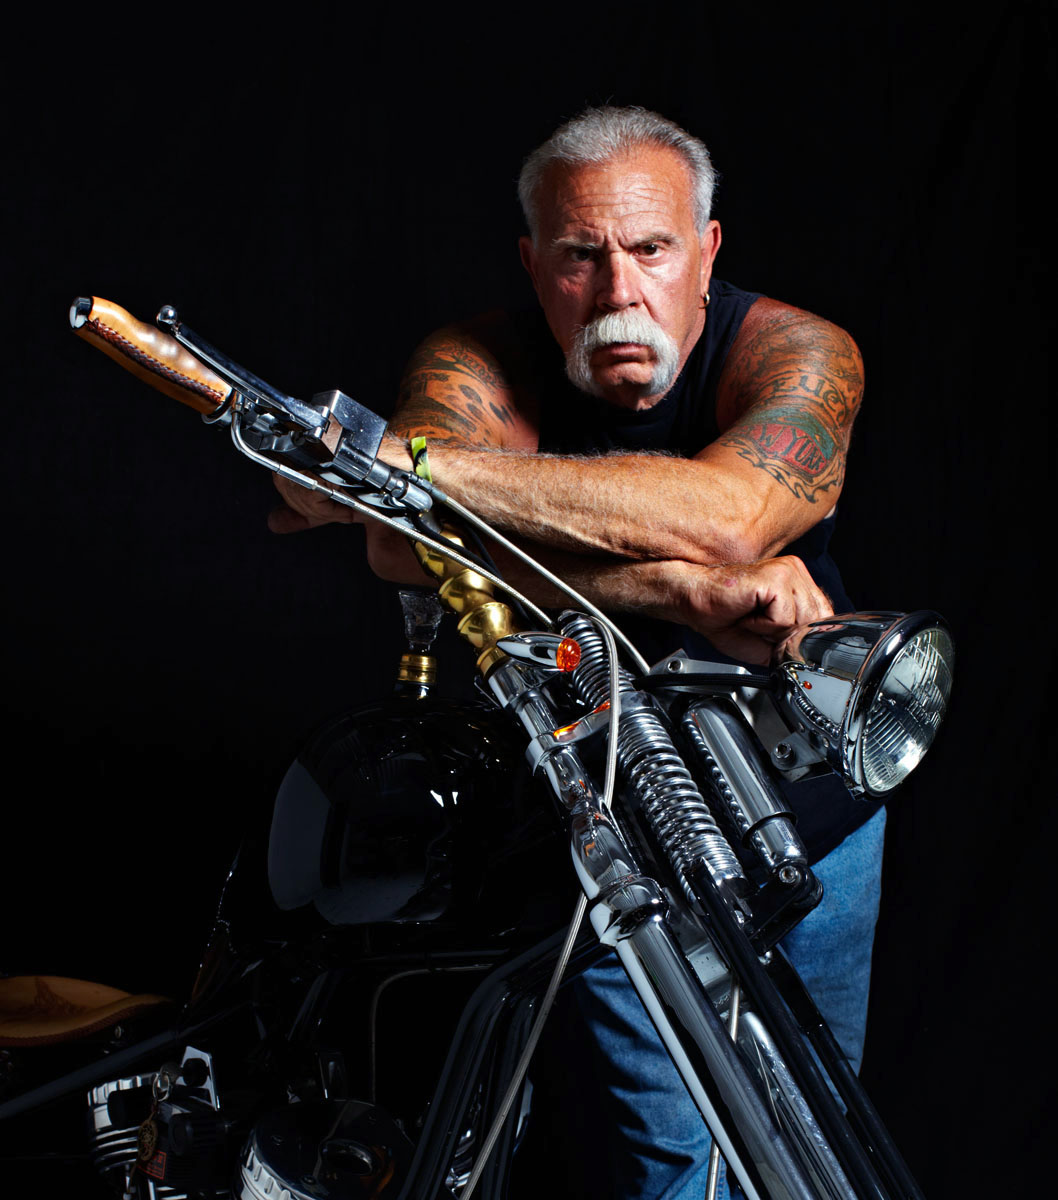 Paul Teutel Sr., Orange County Choppers